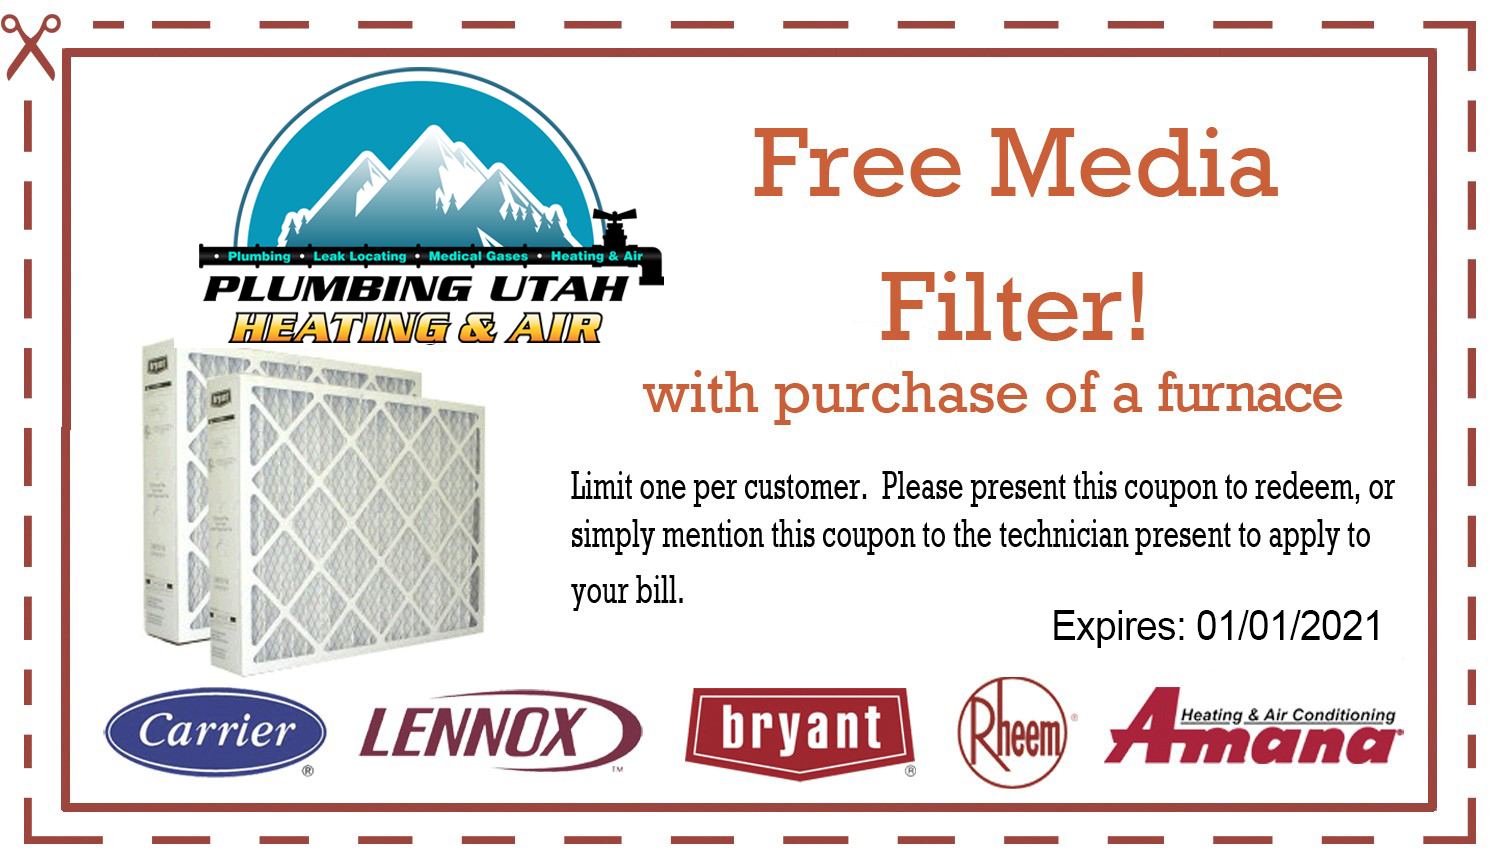 plumbing-utah-hvac-coupon-free-media-filter